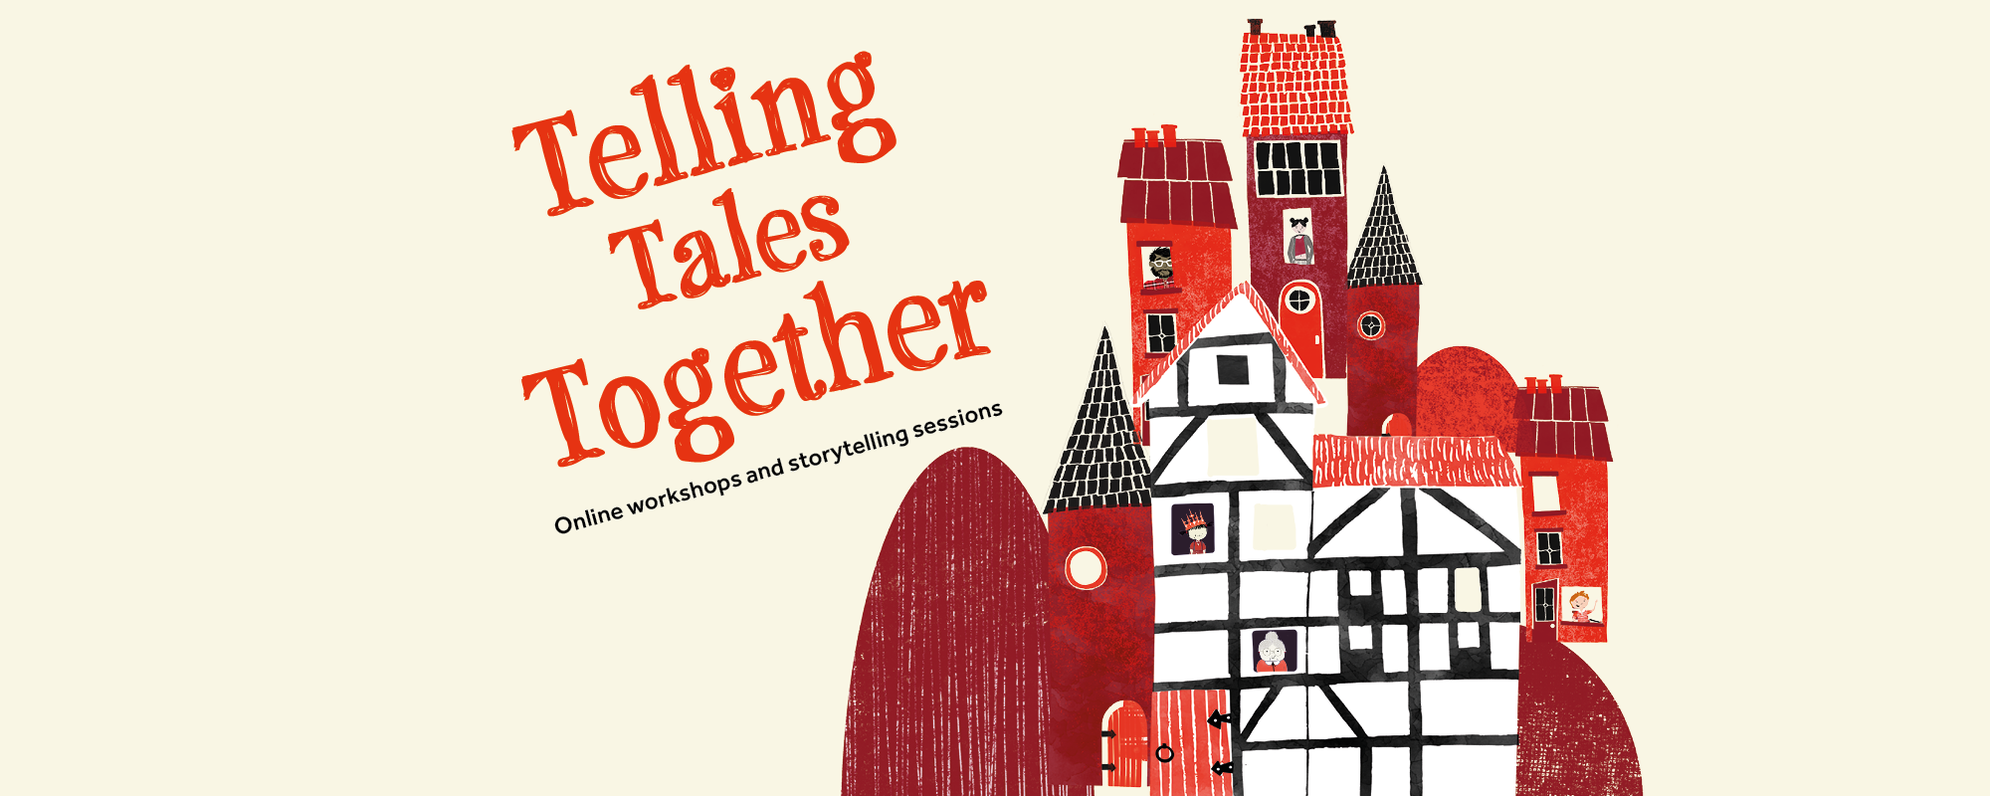 Title reads 'Telling Tales Together Online workshops and storytelling sessions' with cartoon houses and characters alongside it